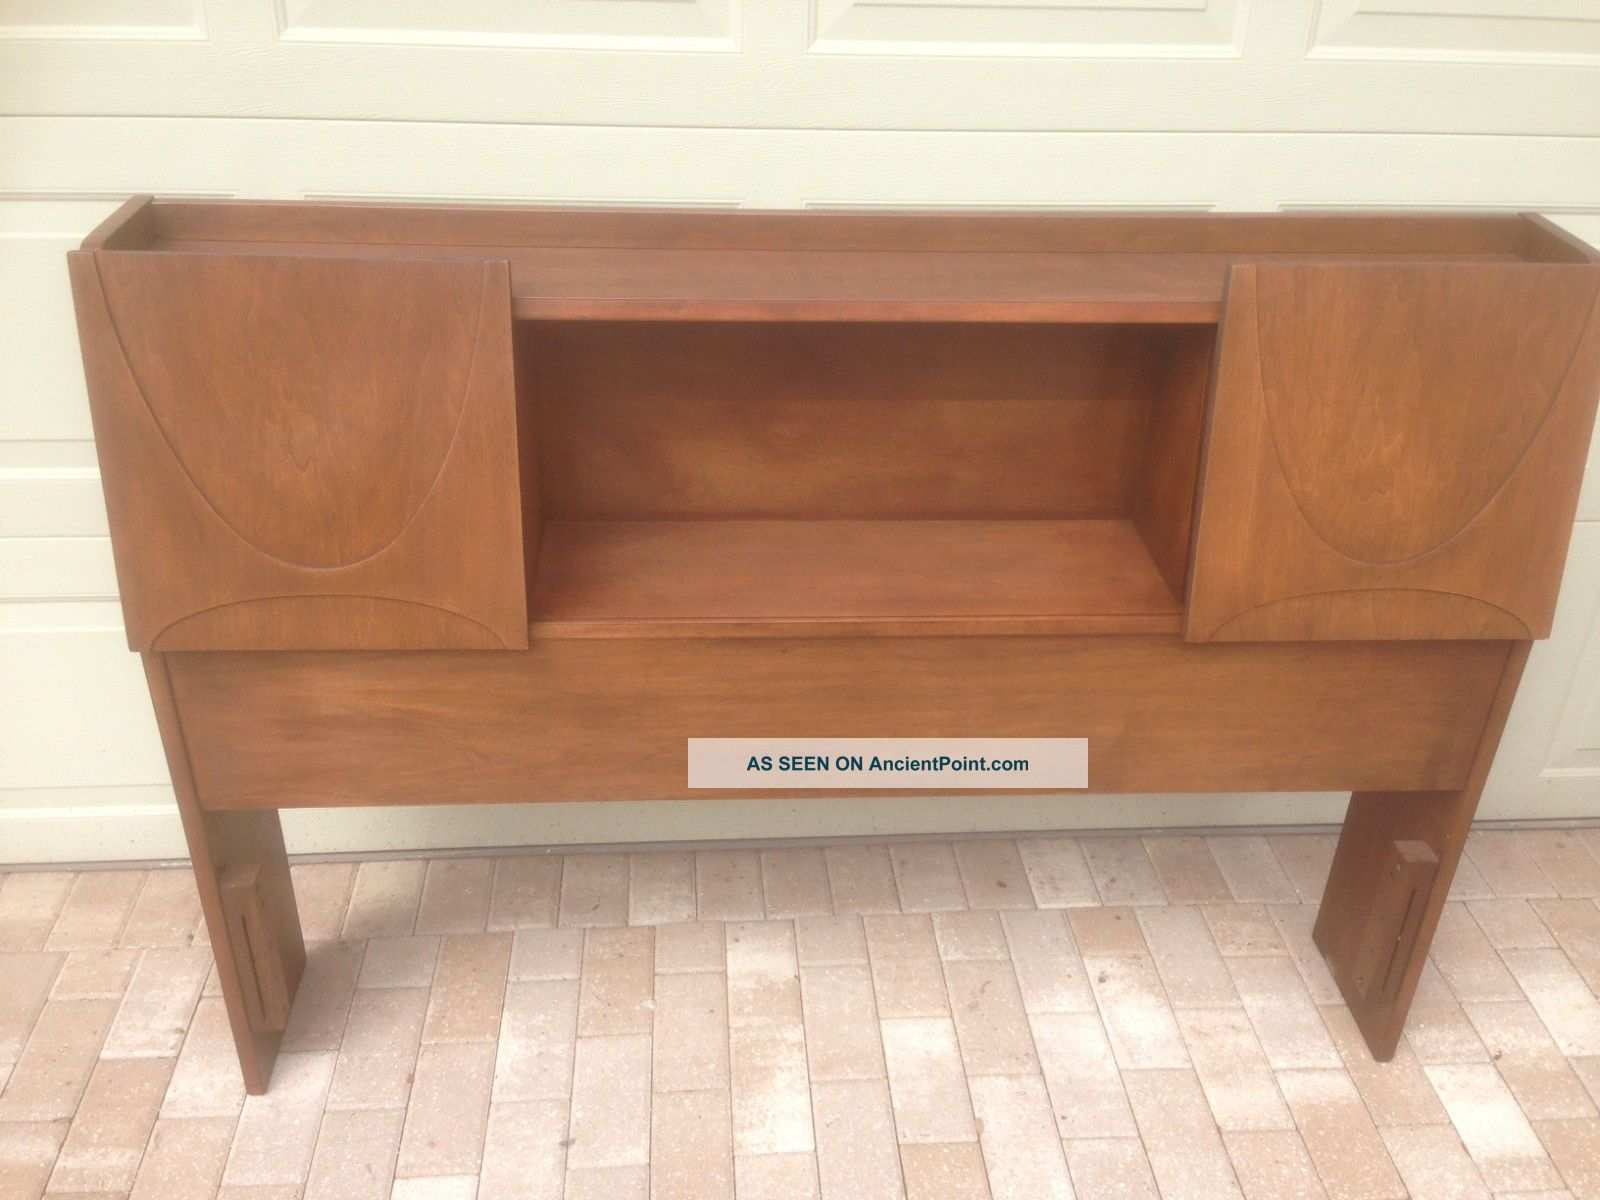 Broyhill Brasilia - Bookcase Headboard - Double/queen With Rails And Footboard 1900-1950 photo